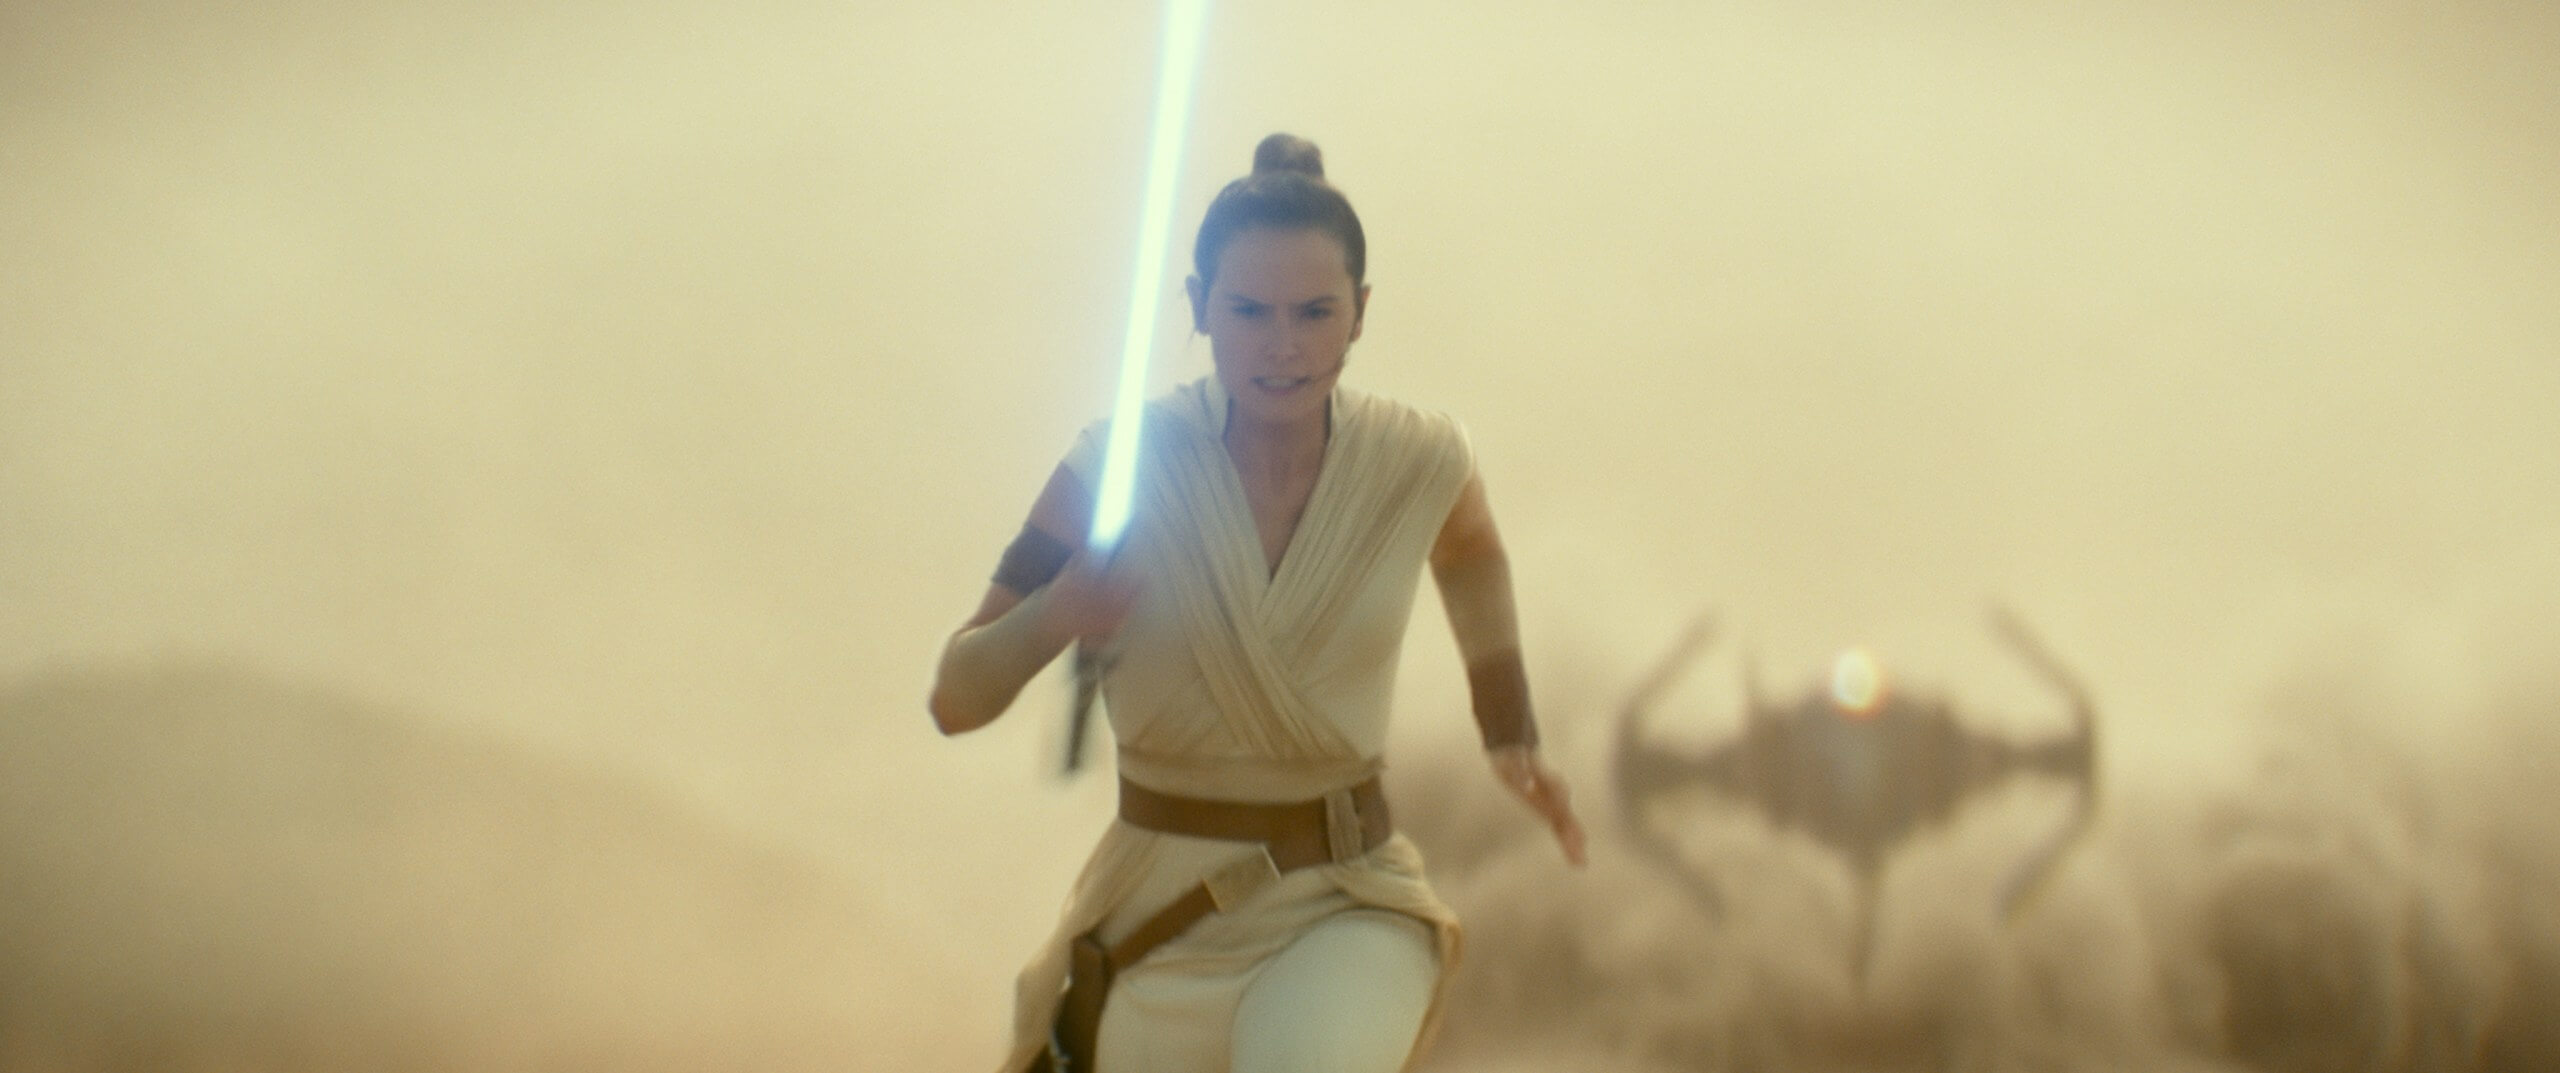 Disney has three new Star Wars movies planned to follow The Rise of Skywalker